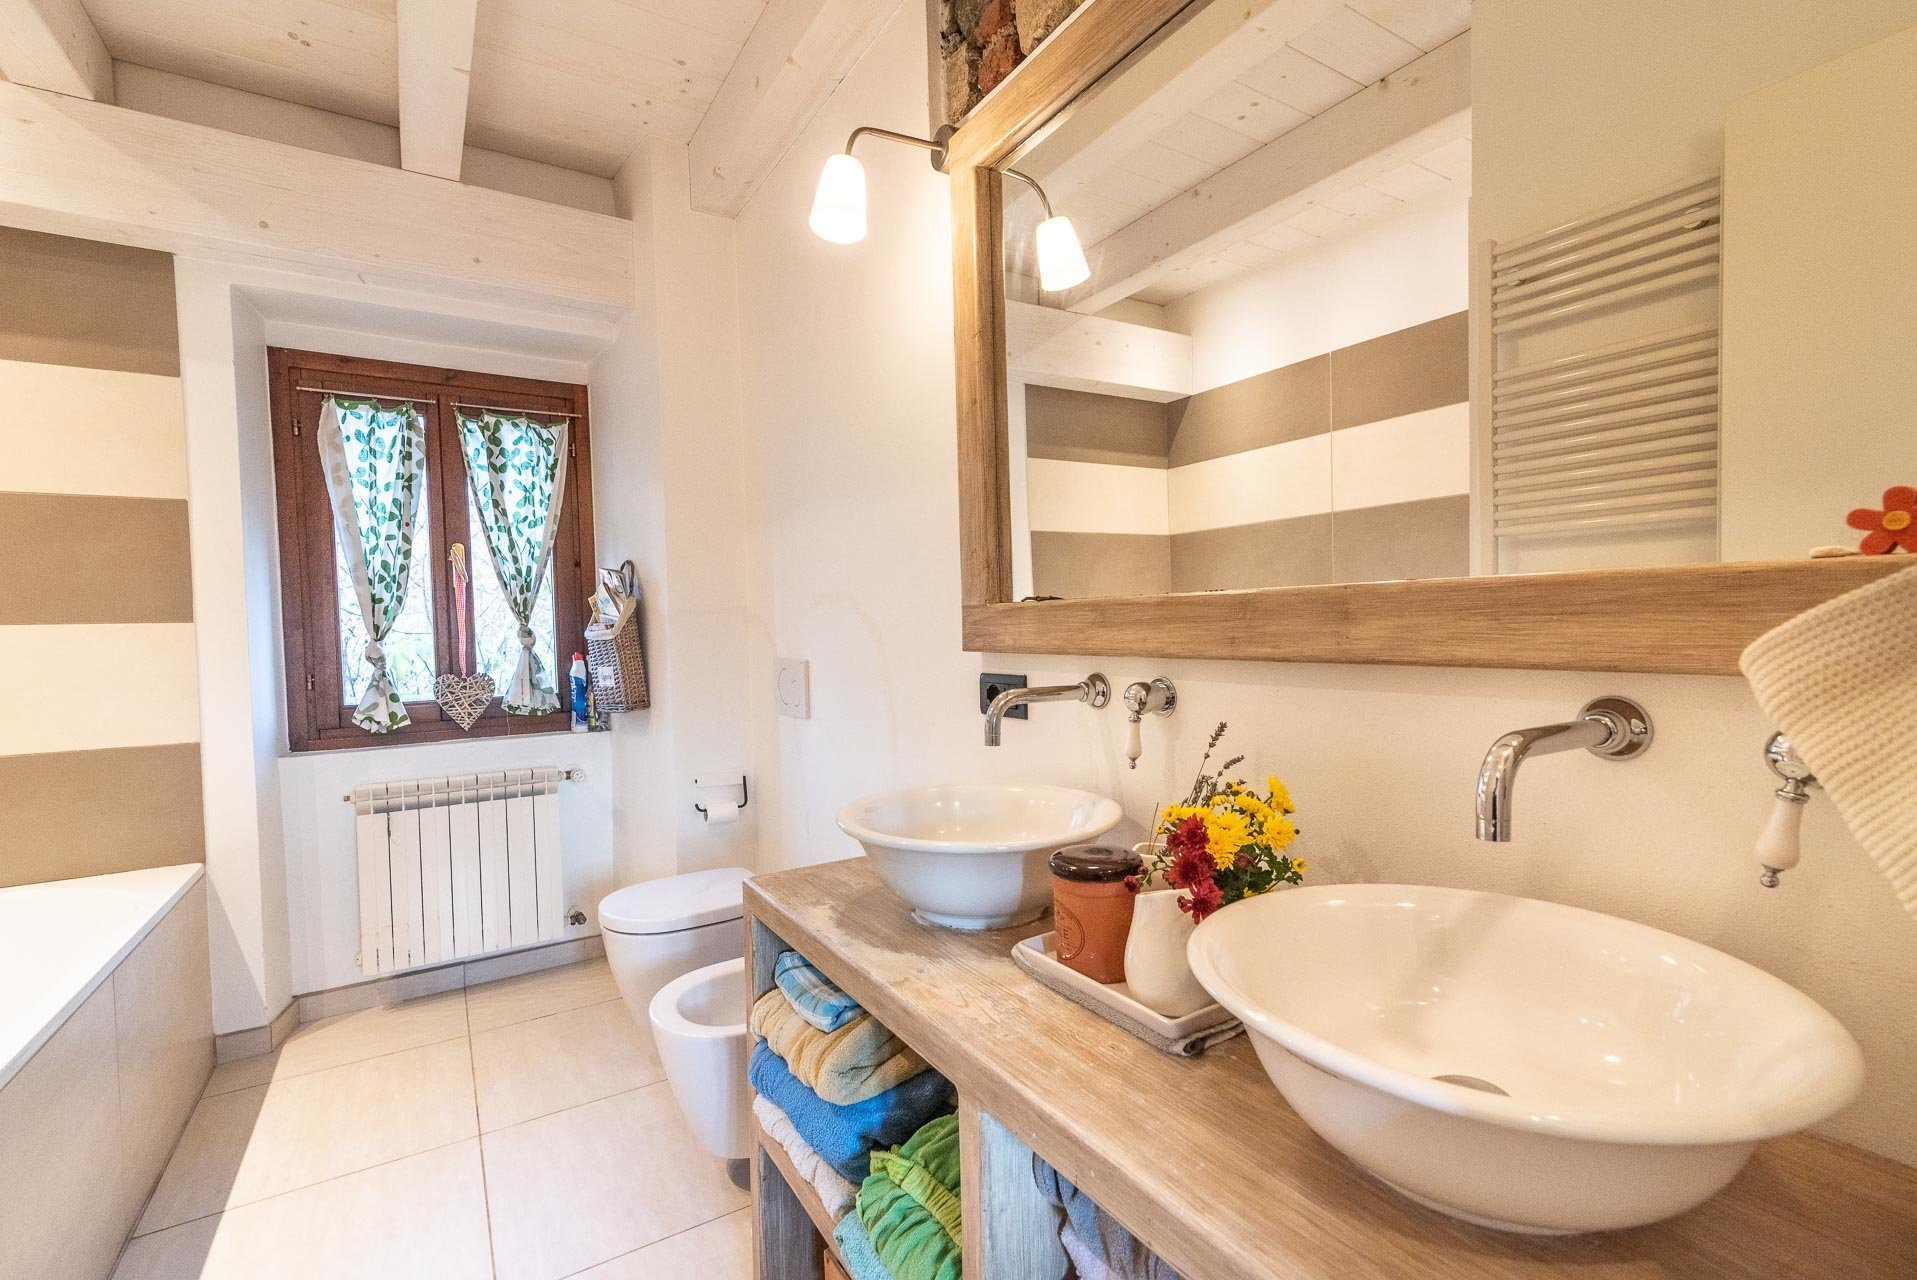 Country house for sell in Paruzzaro - bathroom with bathtub